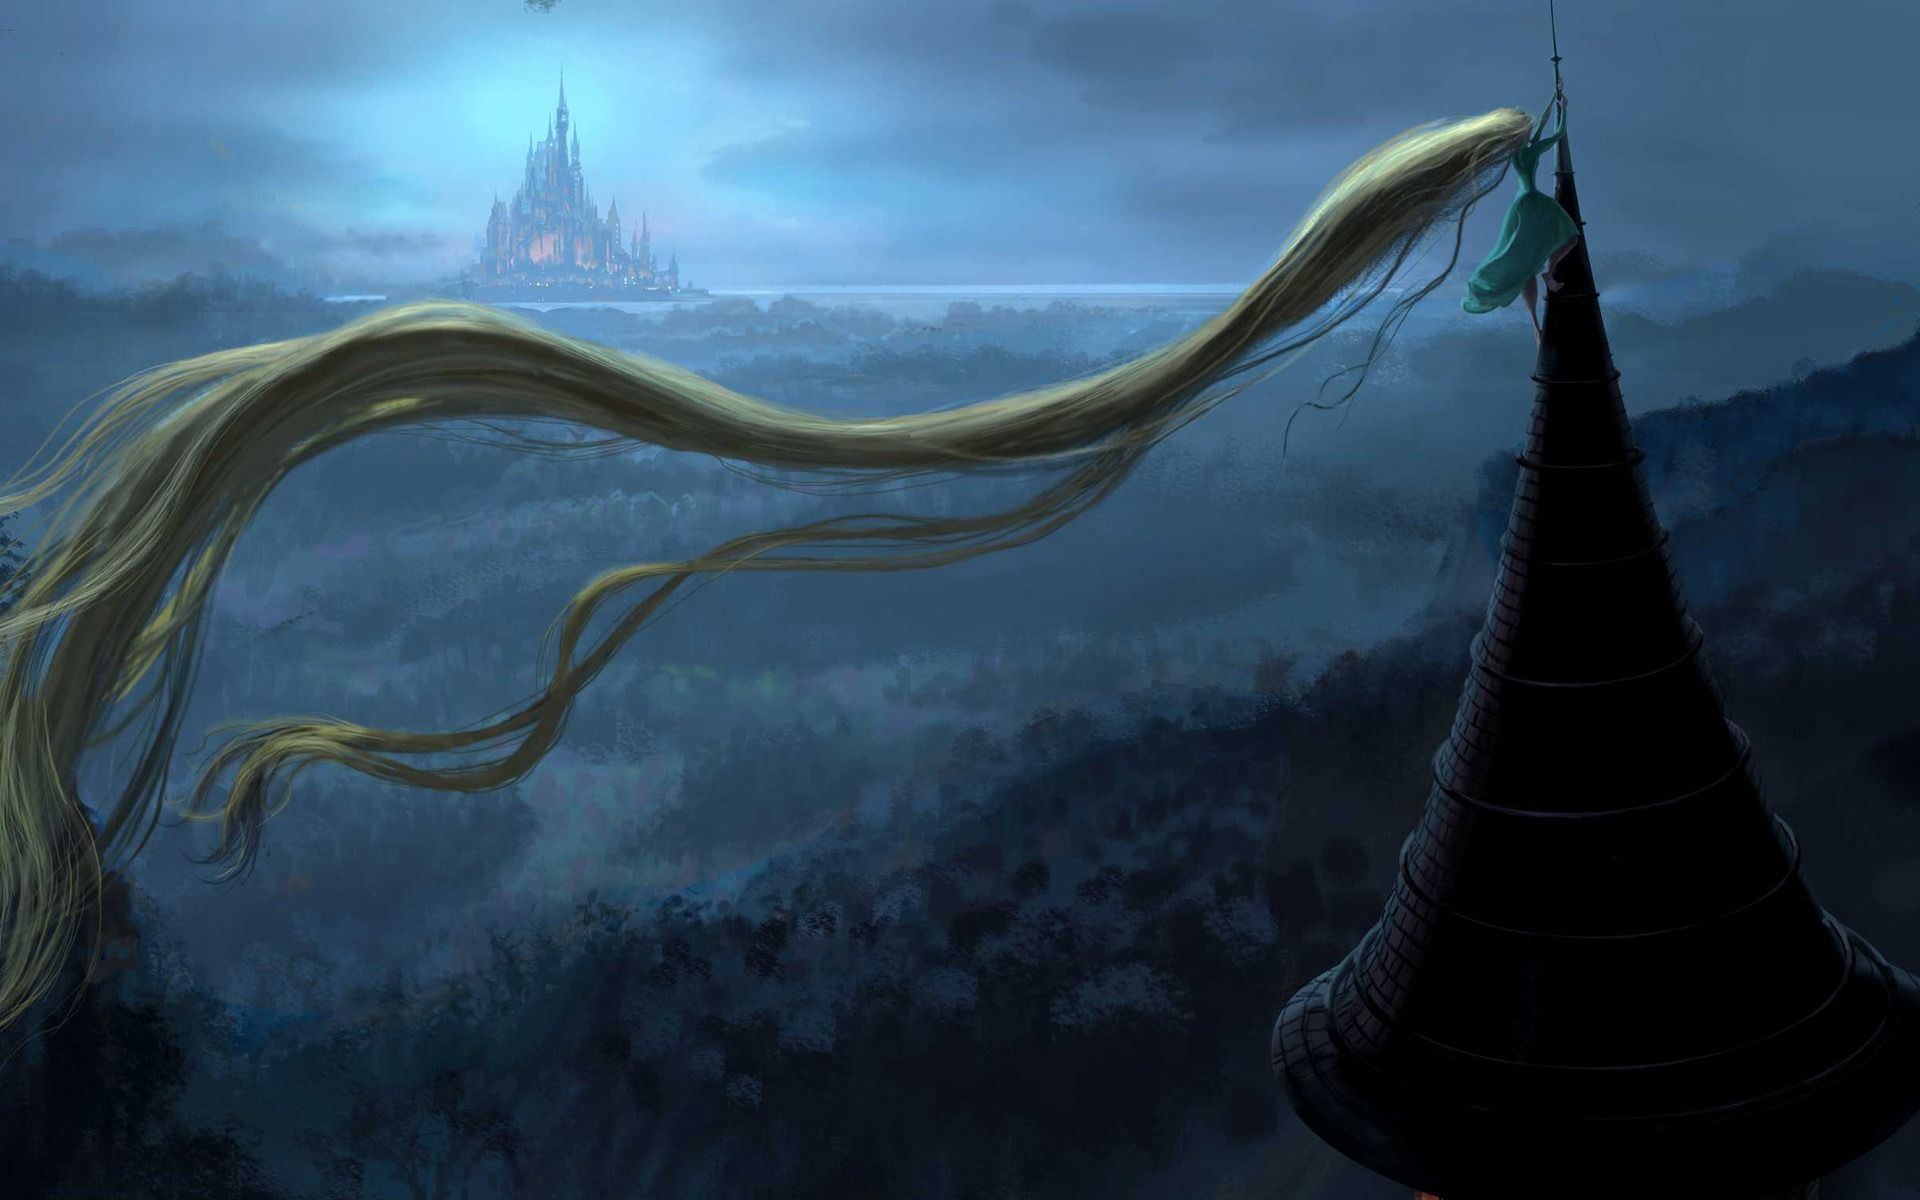 Wallpaper iphone rapunzel - Tangled Images Rapunzel Wallpaper And Background Photos 1280 1024 Tangled Rapunzel Wallpapers 45 Wallpapers Adorable Wallpapers Desktop Pinterest